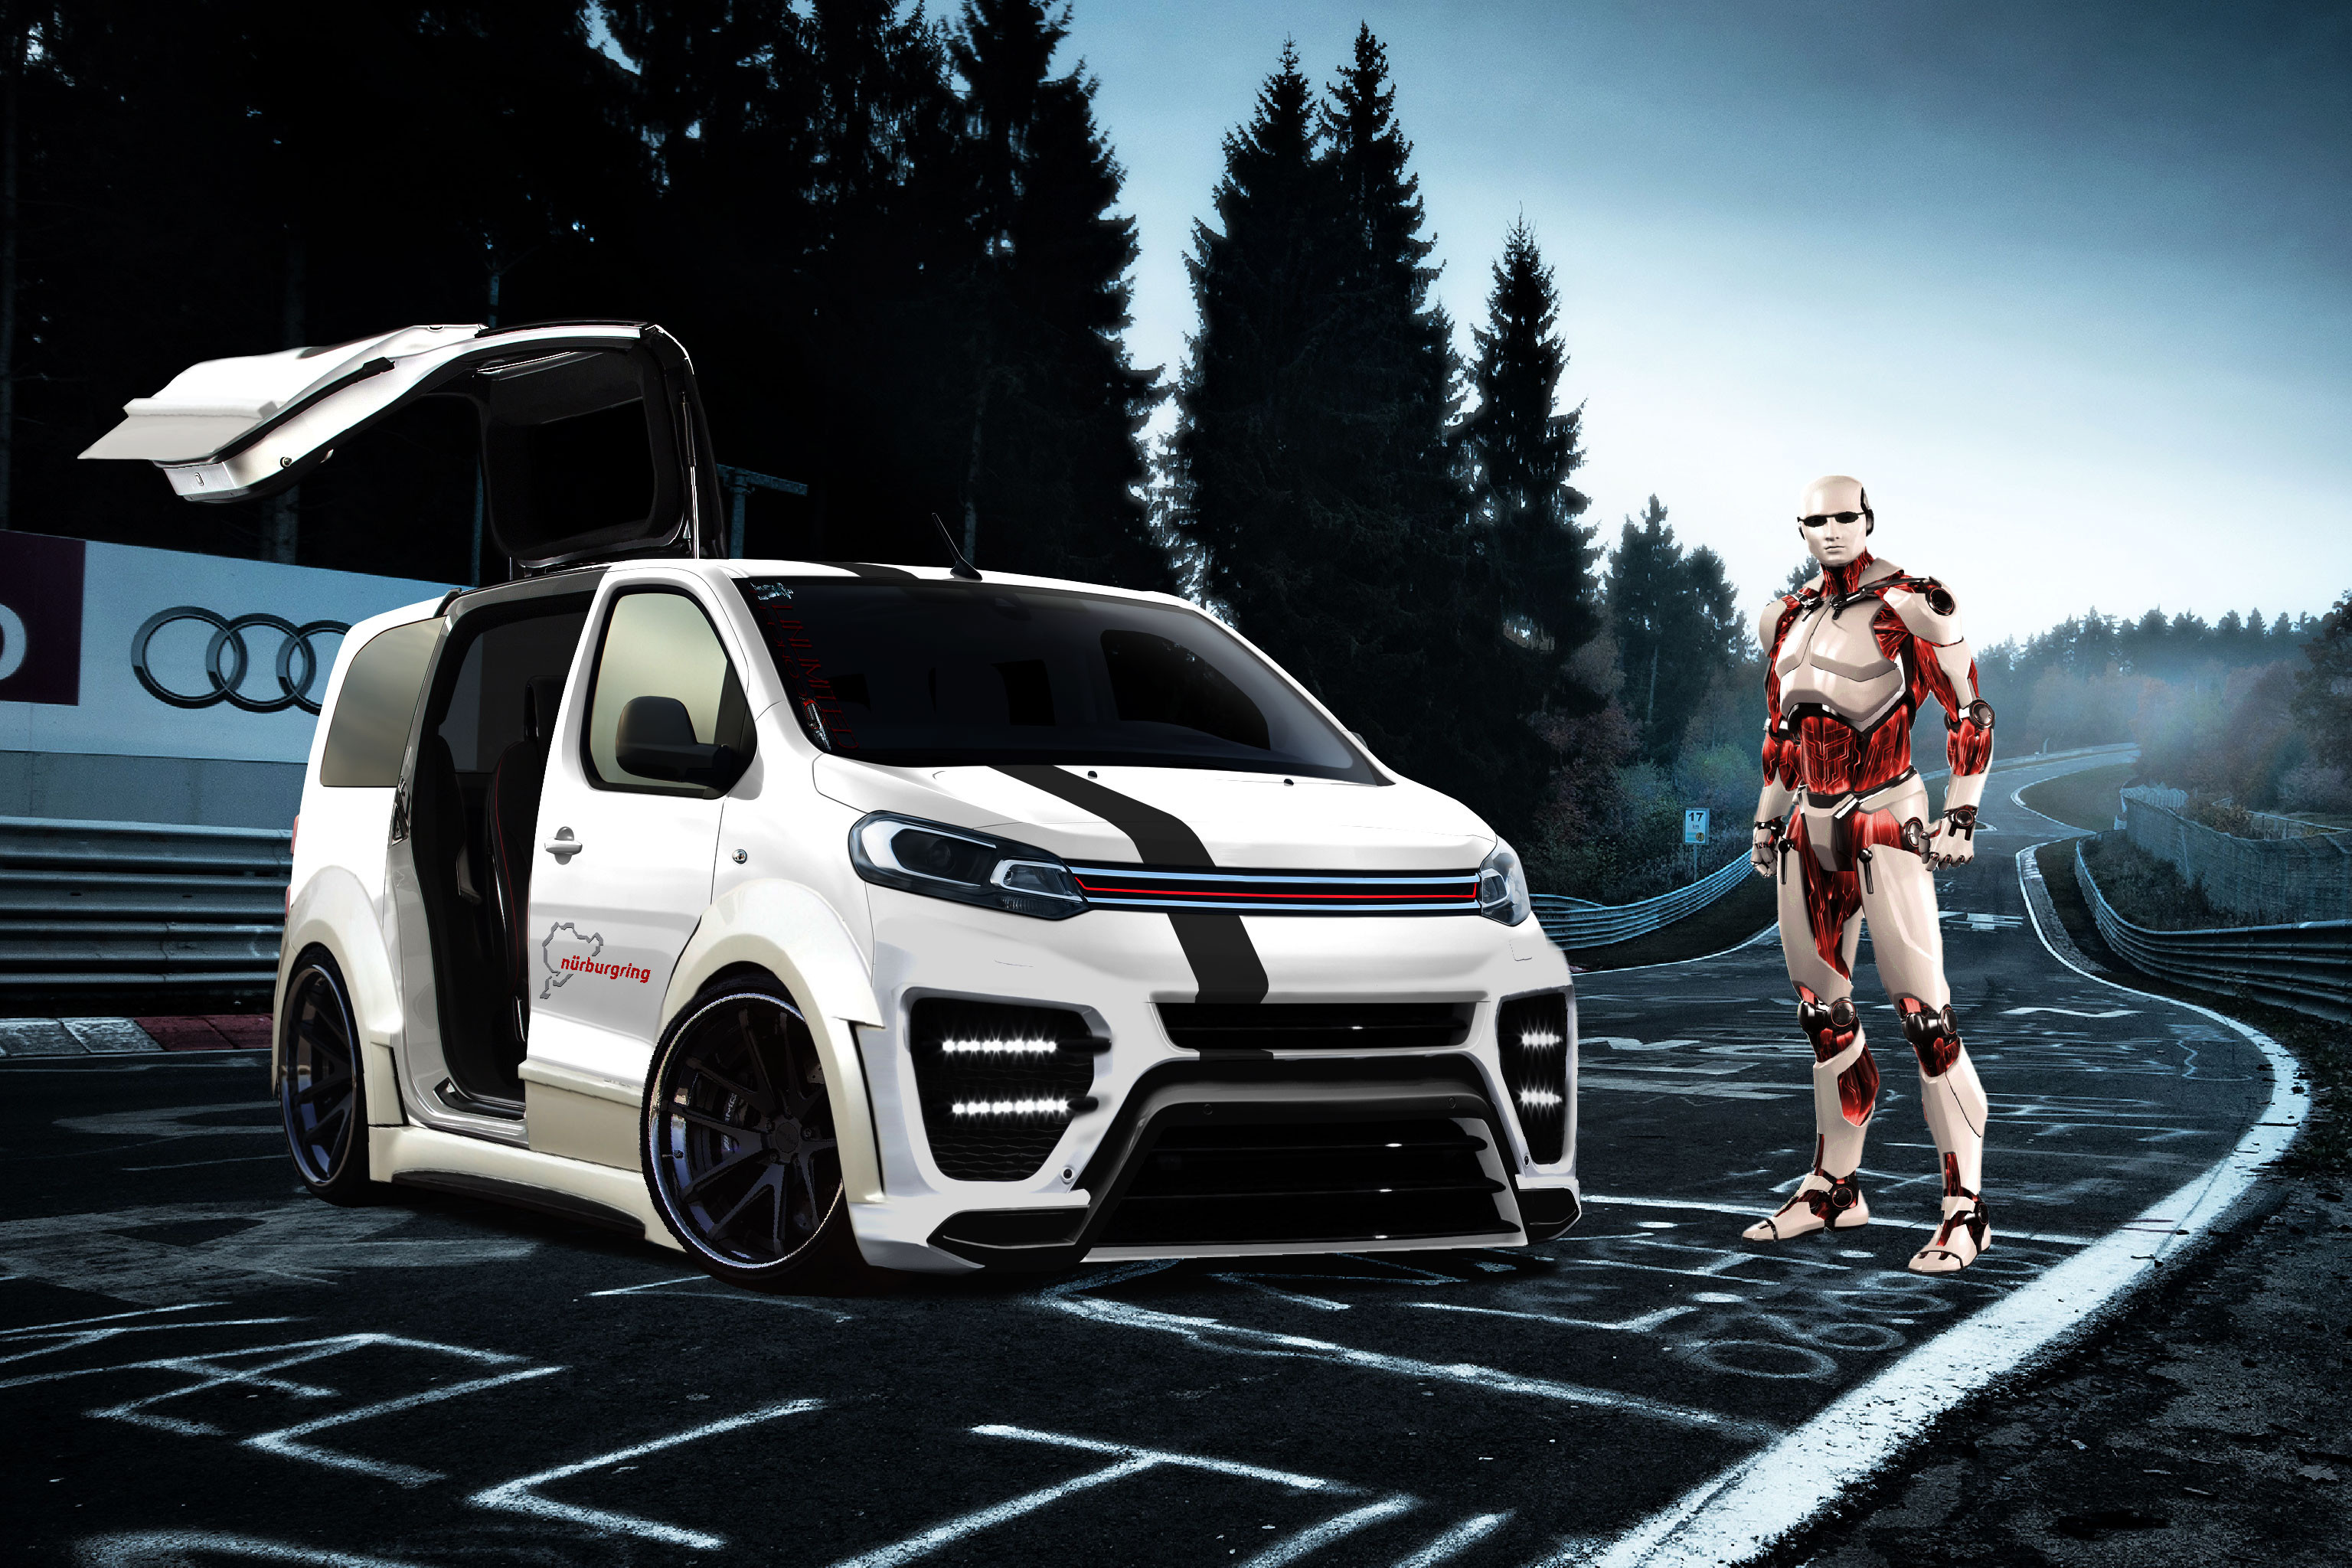 citroen space sport tourer rzr citro n unlimited concept photos club. Black Bedroom Furniture Sets. Home Design Ideas